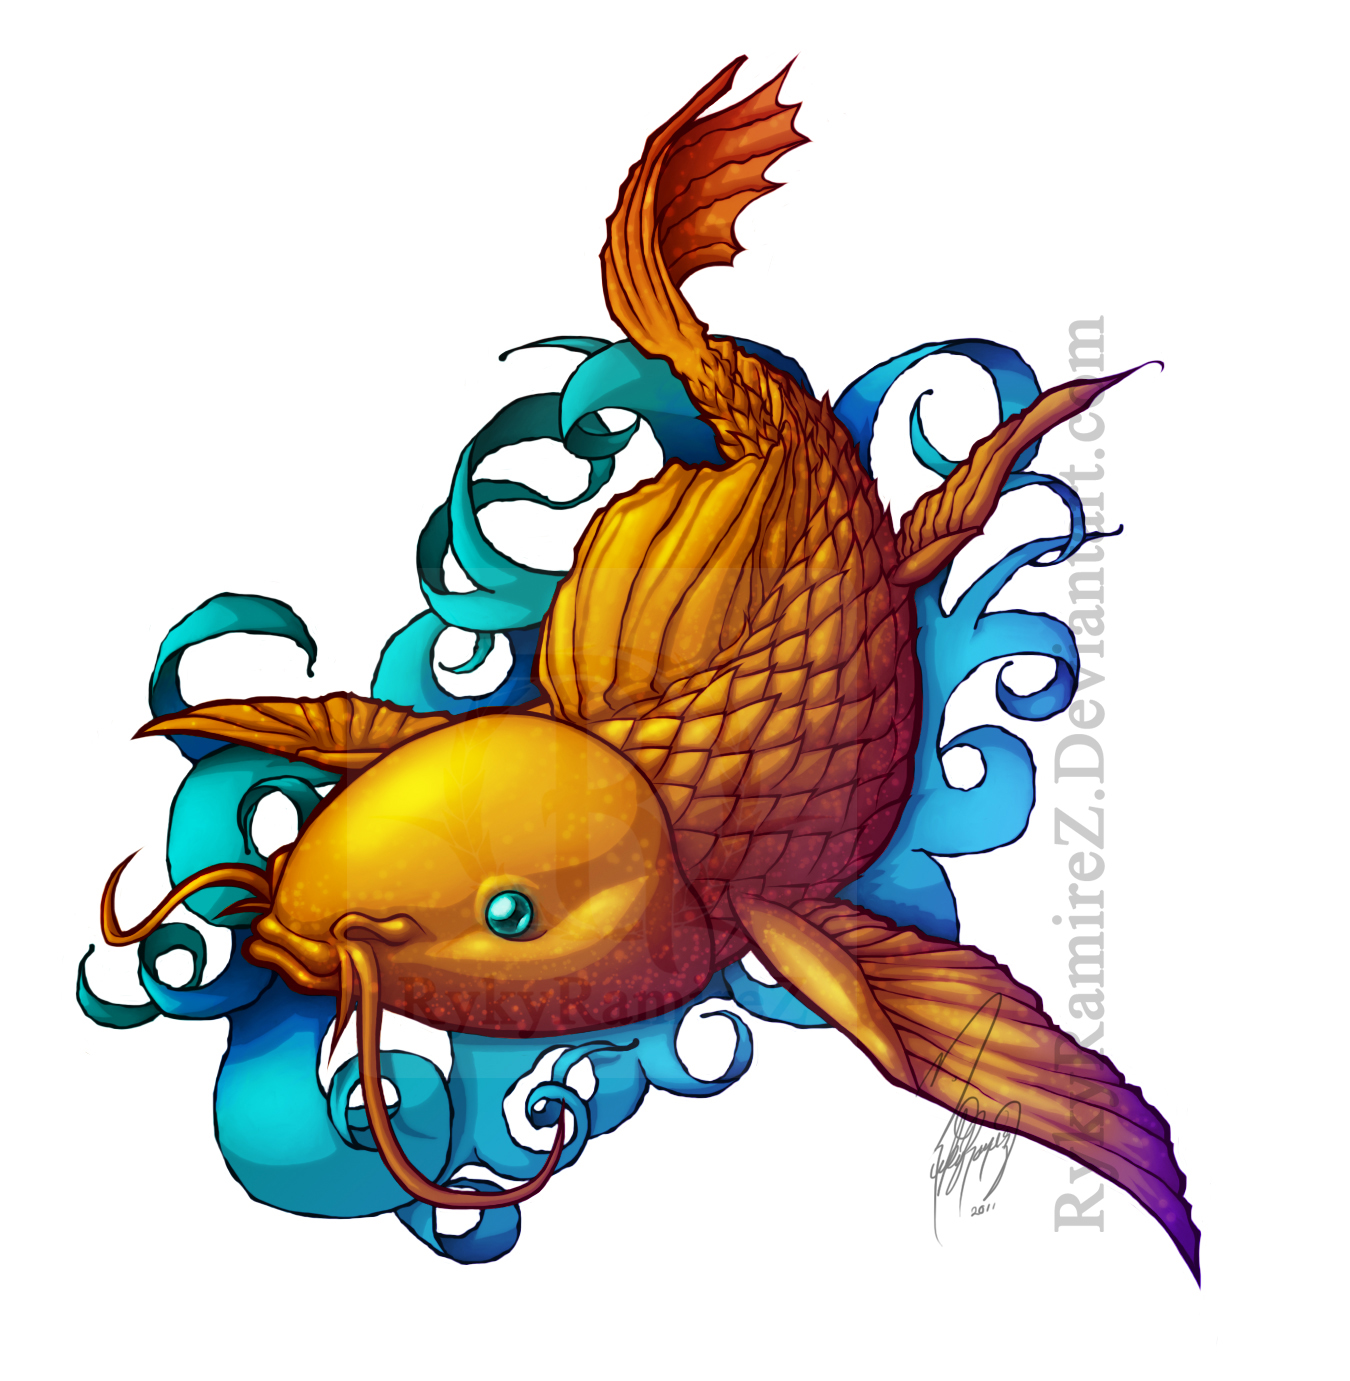 Carpa koi by rykyramirez on deviantart for Carpa koi costo